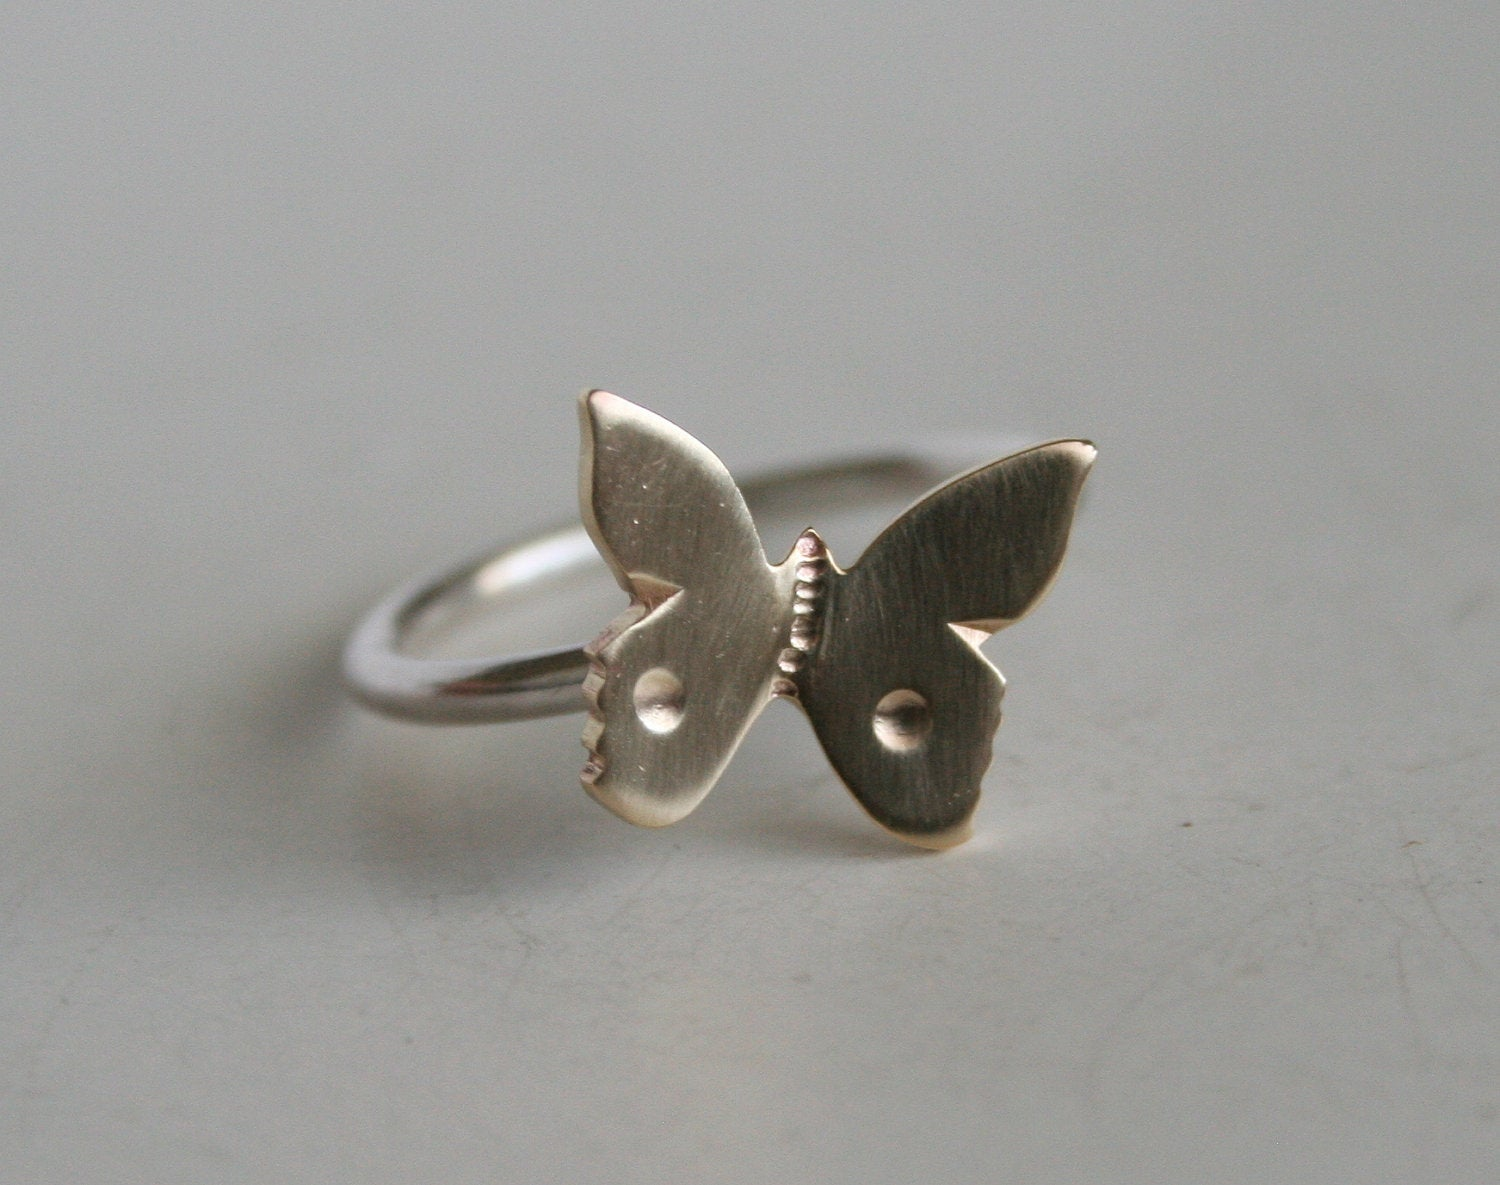 Flying Butterfly Ring, Butterfly Jewelry, Brass Jewelry, Silver Ring, Cute Ring, Girls Ring, Gift For Her, Gold Color Butterfly, 925